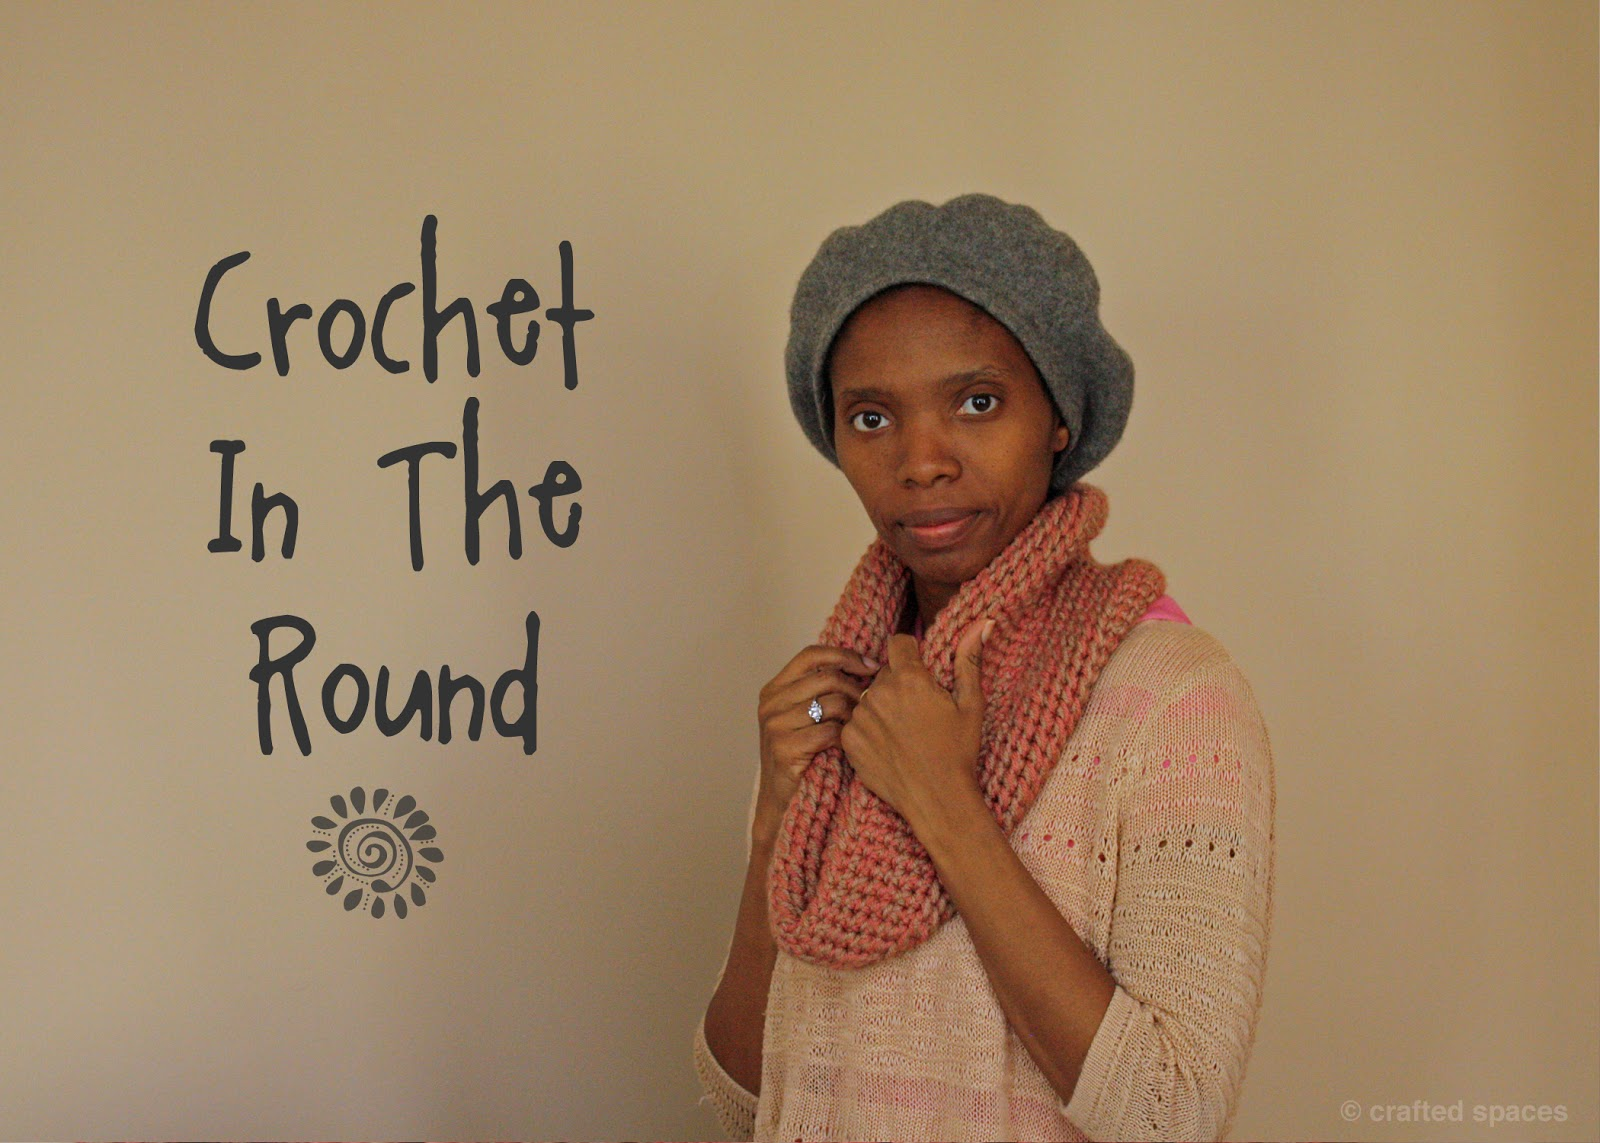 Crochet Patterns In The Round : Crafted Spaces: Crochet In The Round